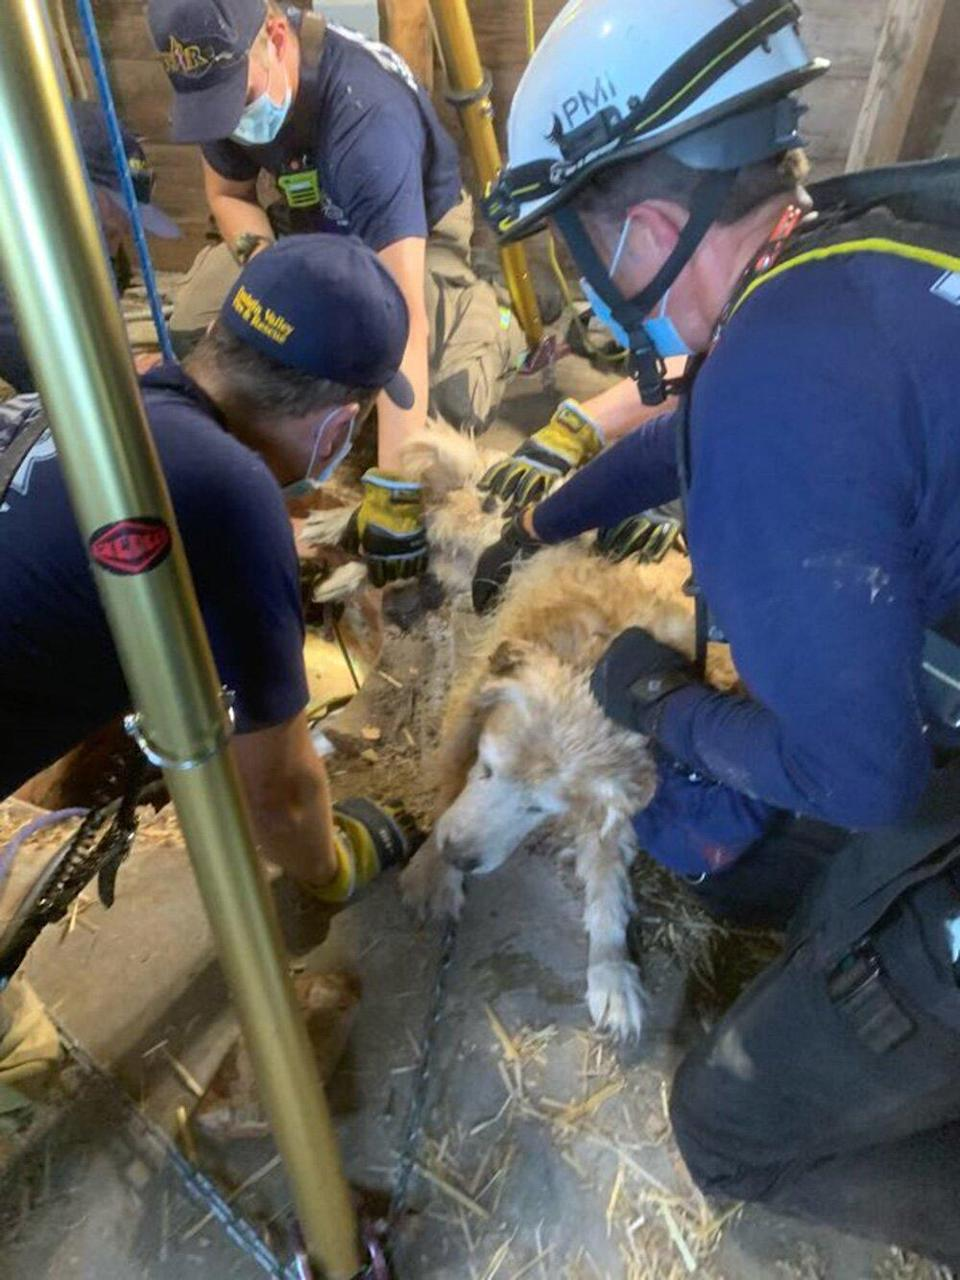 Firefighters from station 62 in Aloha paired up with firefighters from our technical rescue team from station 51 in Tigard to rescue a 12 yo Golden Retriever that had fallen into an abounded well in Aloha this afternoon.